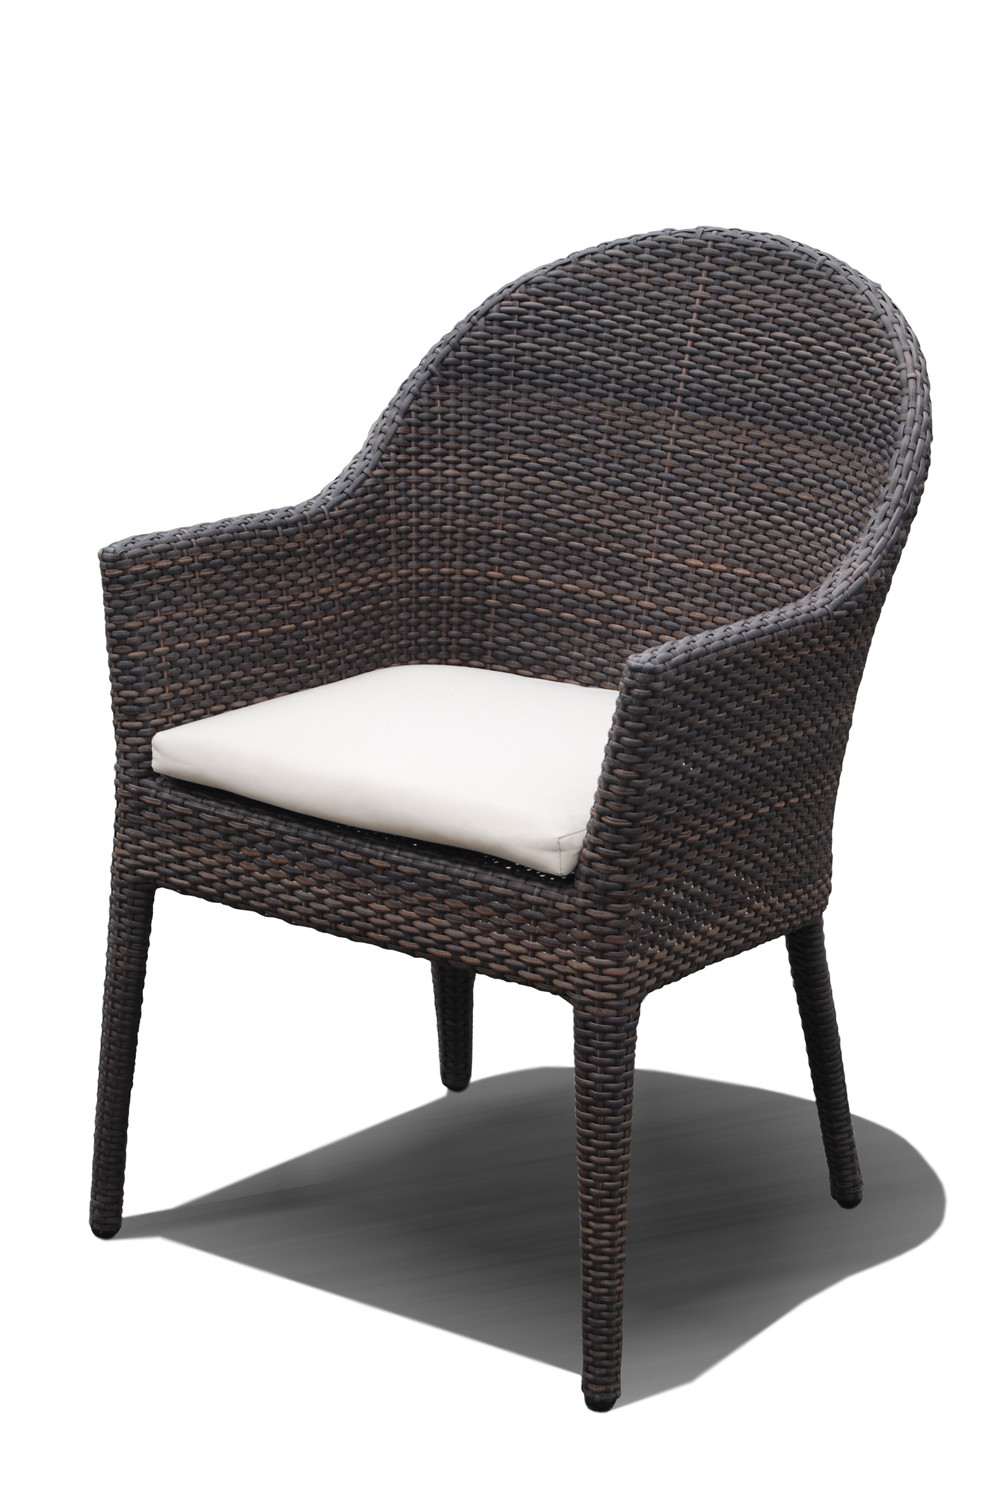 Outdoor Wicker Dining Chairs Hospitality Rattan Kenya Wicker Dining Chair